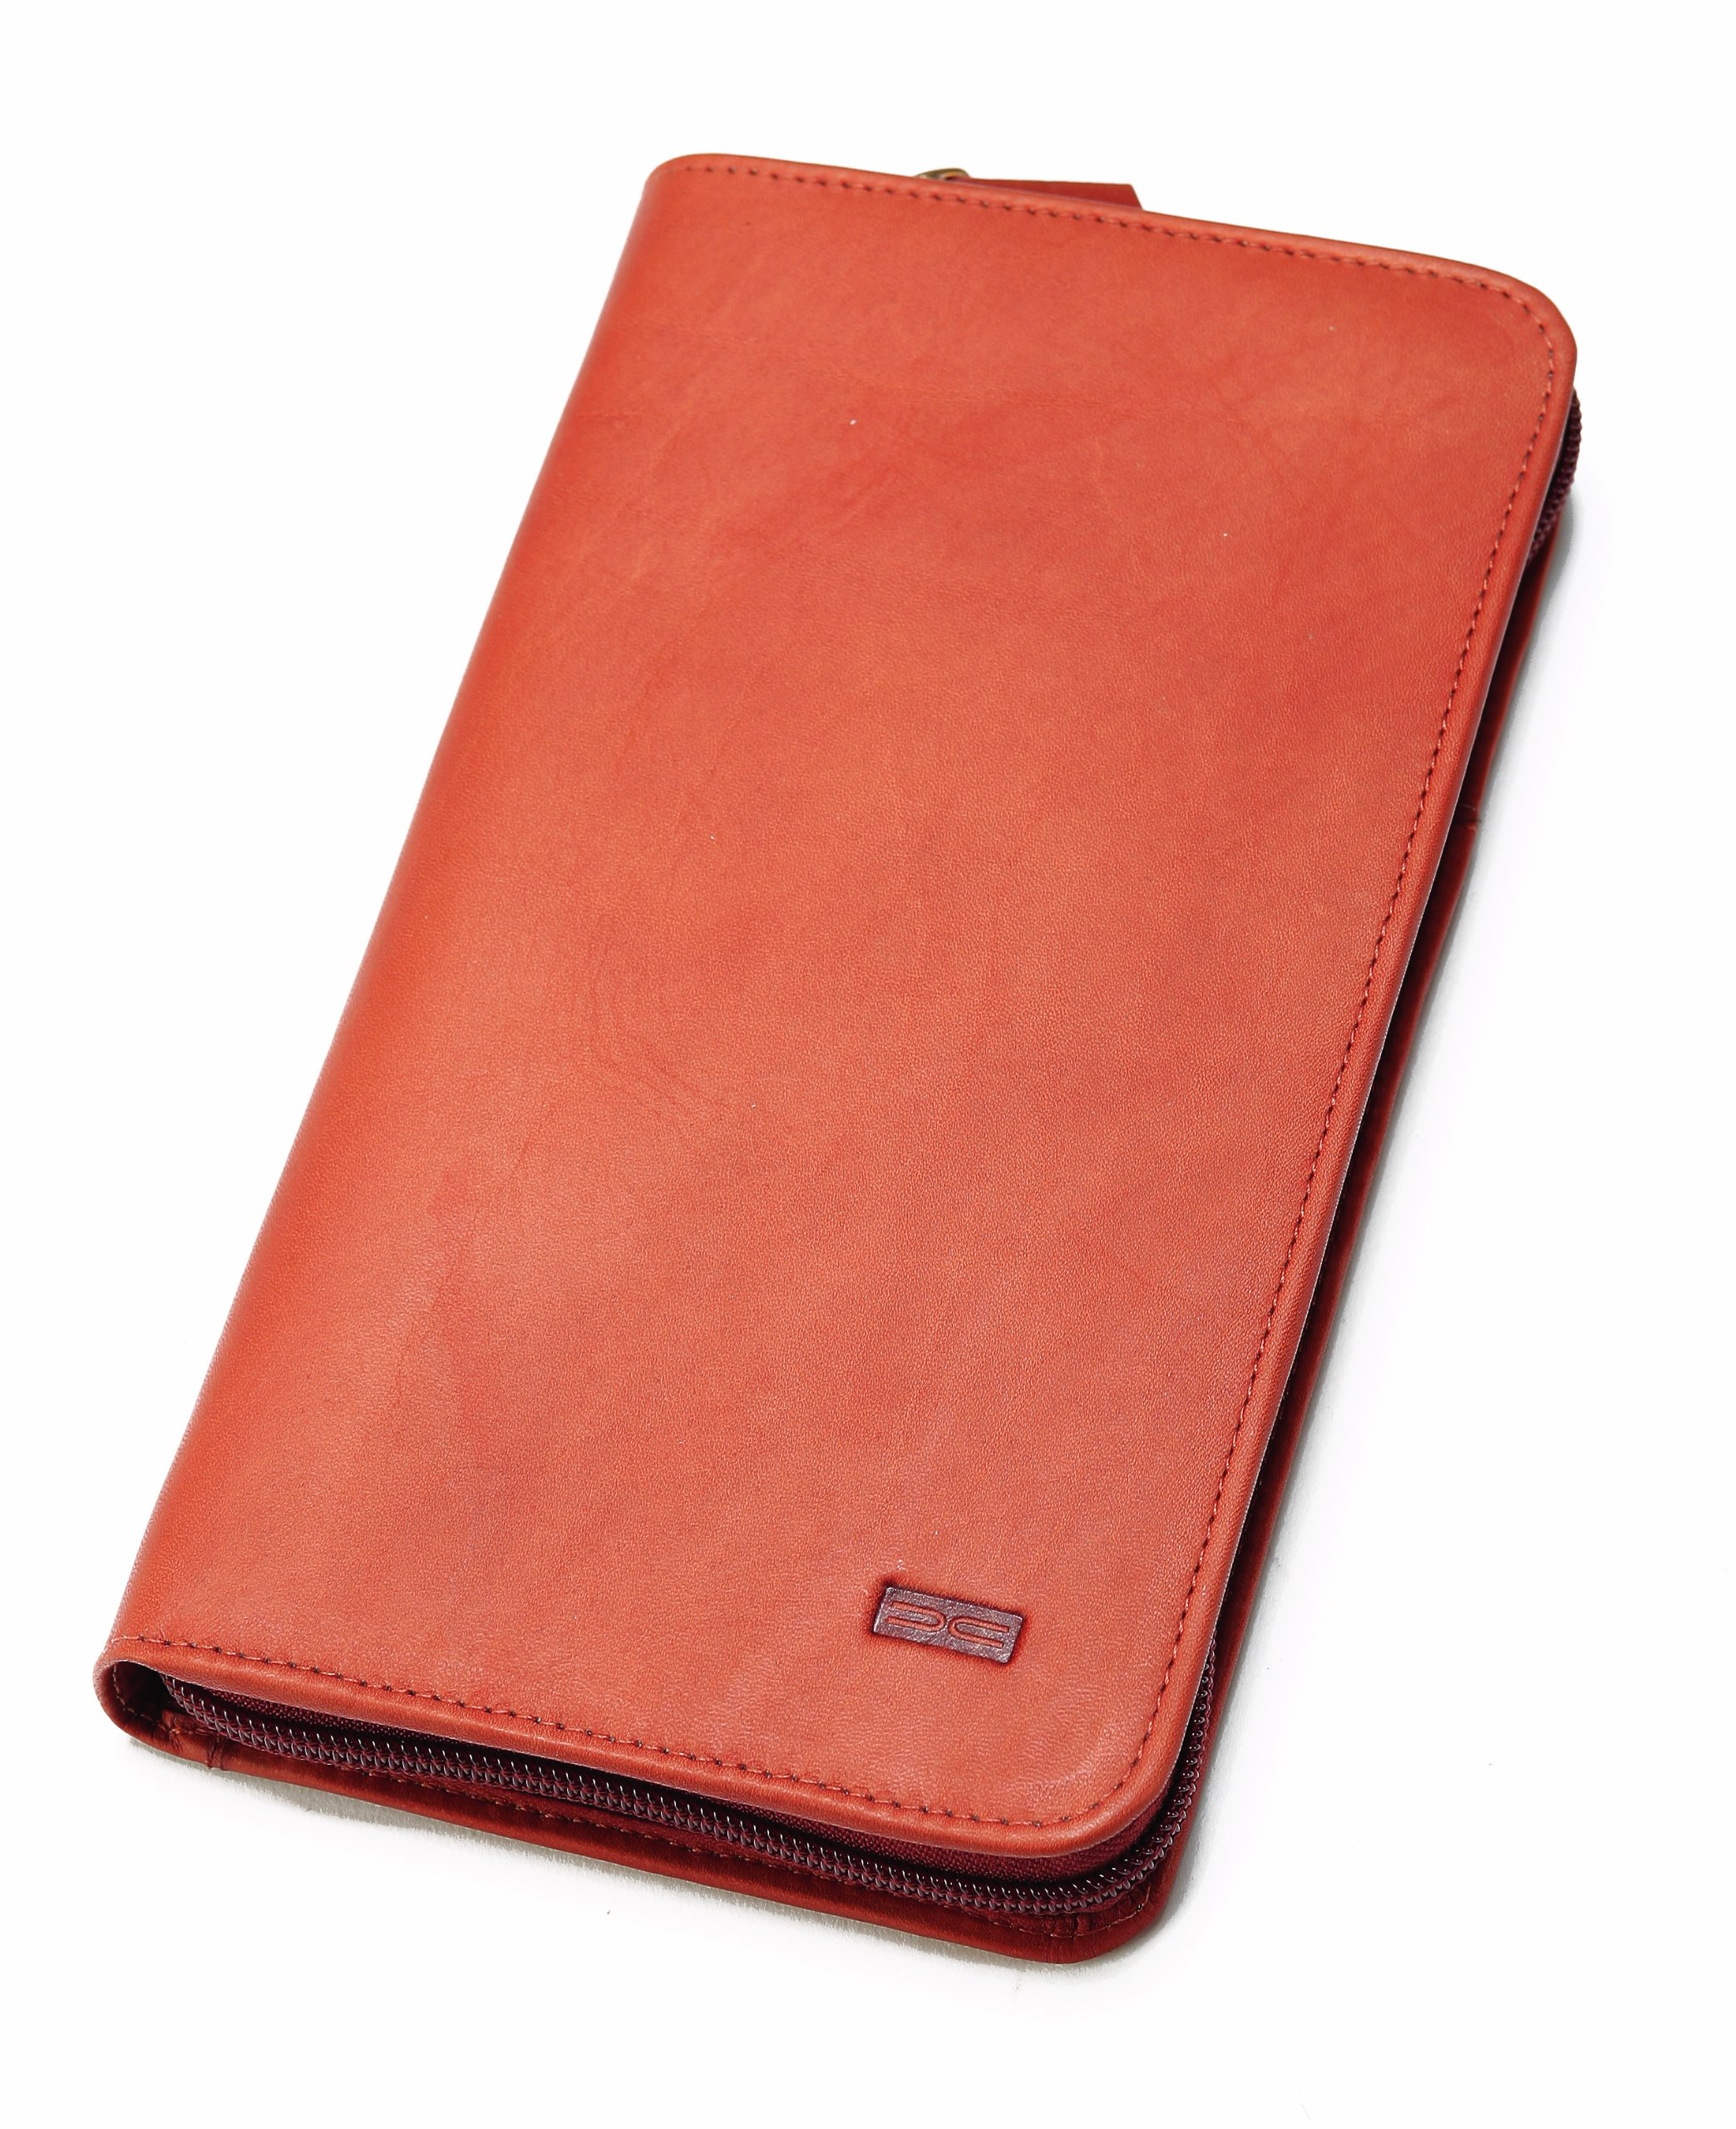 Claire Chase Travel Wallet, Saddle, One Size